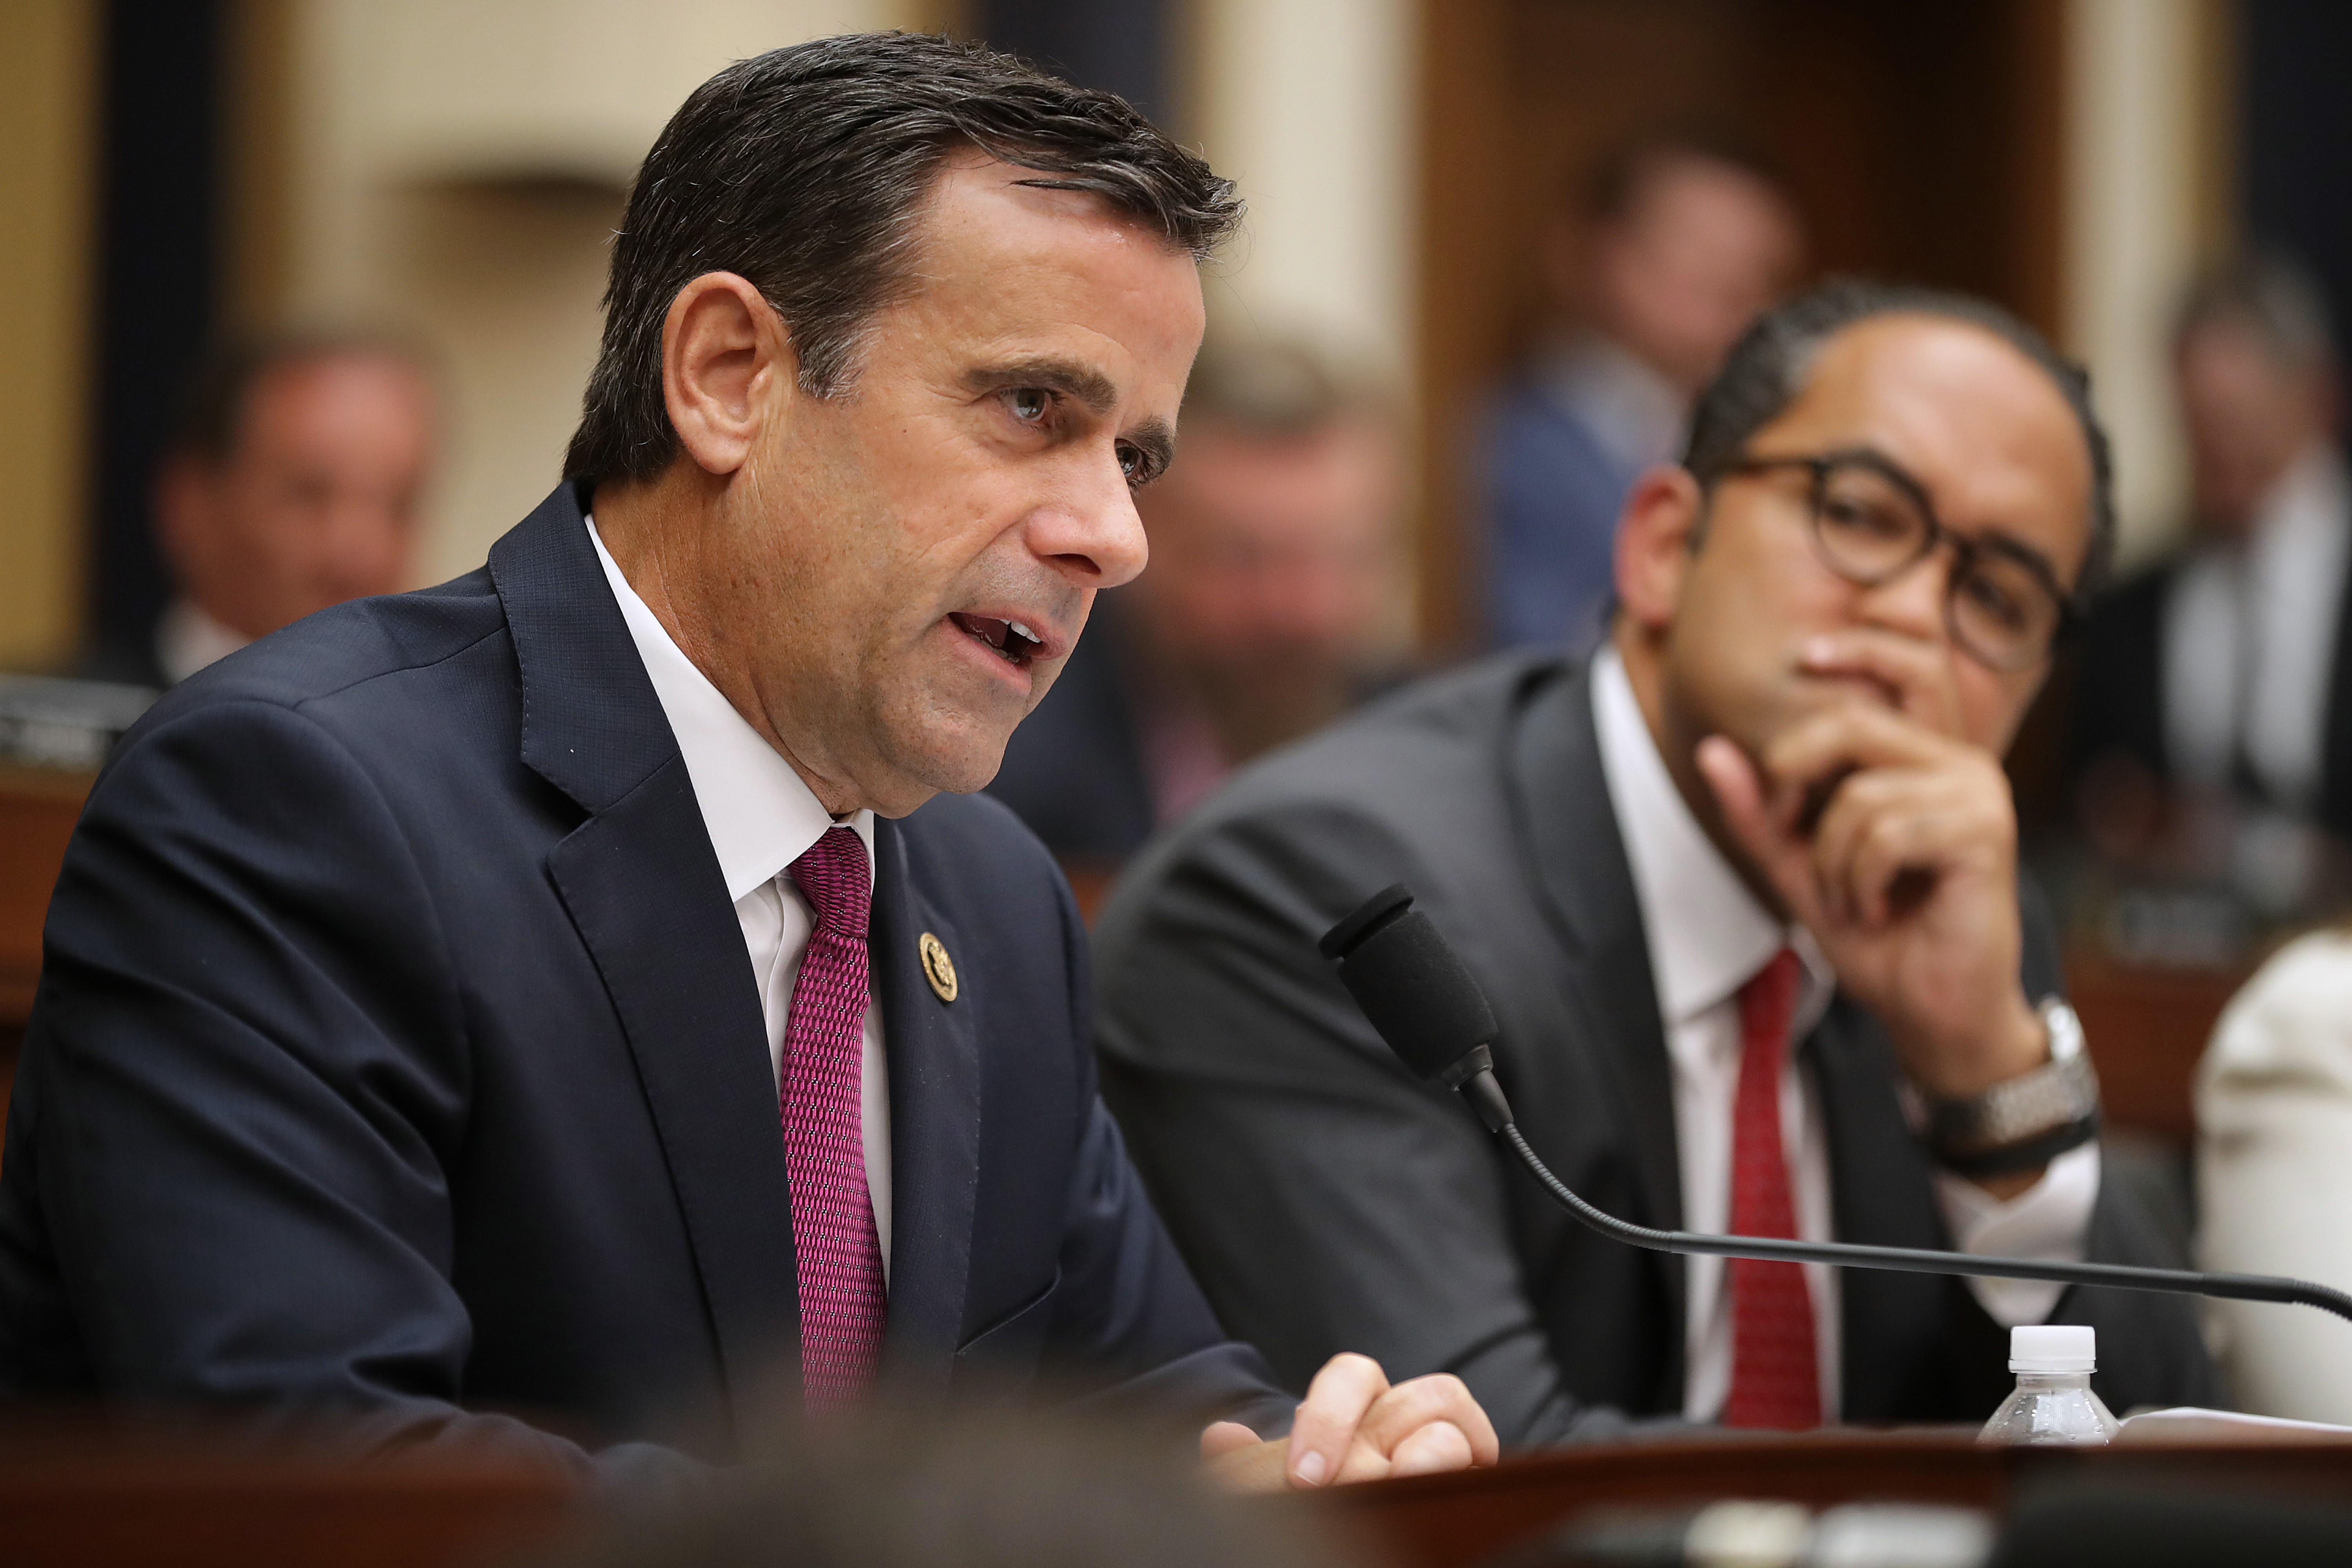 Rep. John Ratcliffe (R-TX) questions former special counsel Robert Mueller as he testifies before the House Intelligence Committee on July 24, 2019 in Washington, DC.